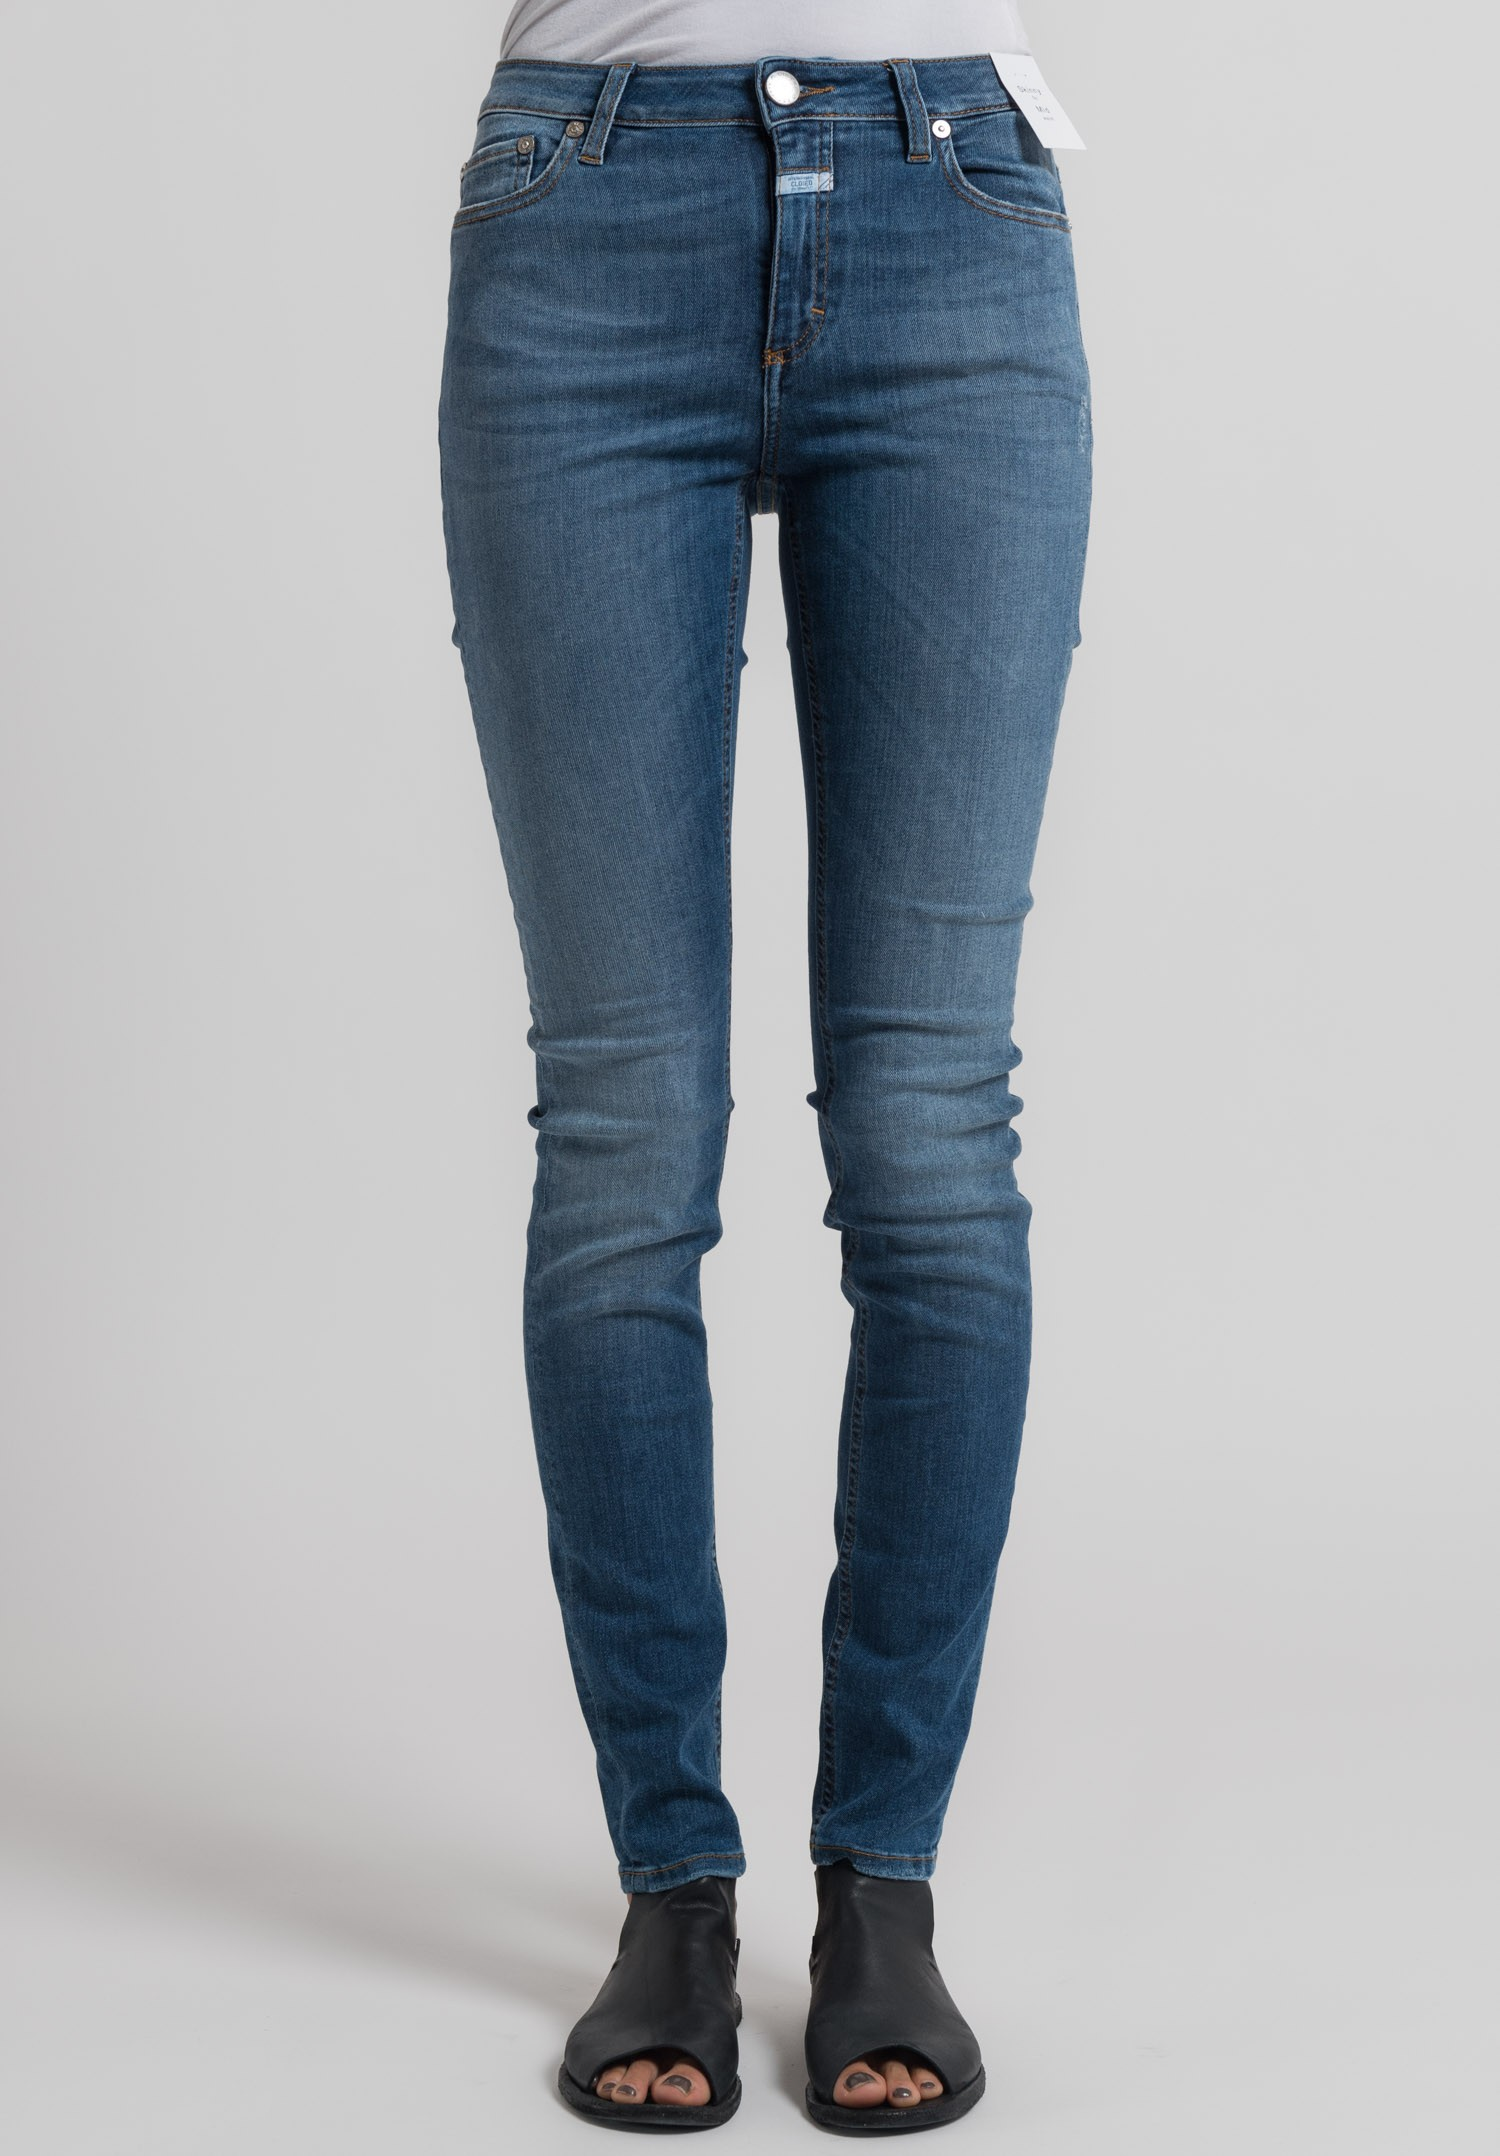 Closed Mid-Rise Skinny Jeans With Mastercard JL0xZ5XkY